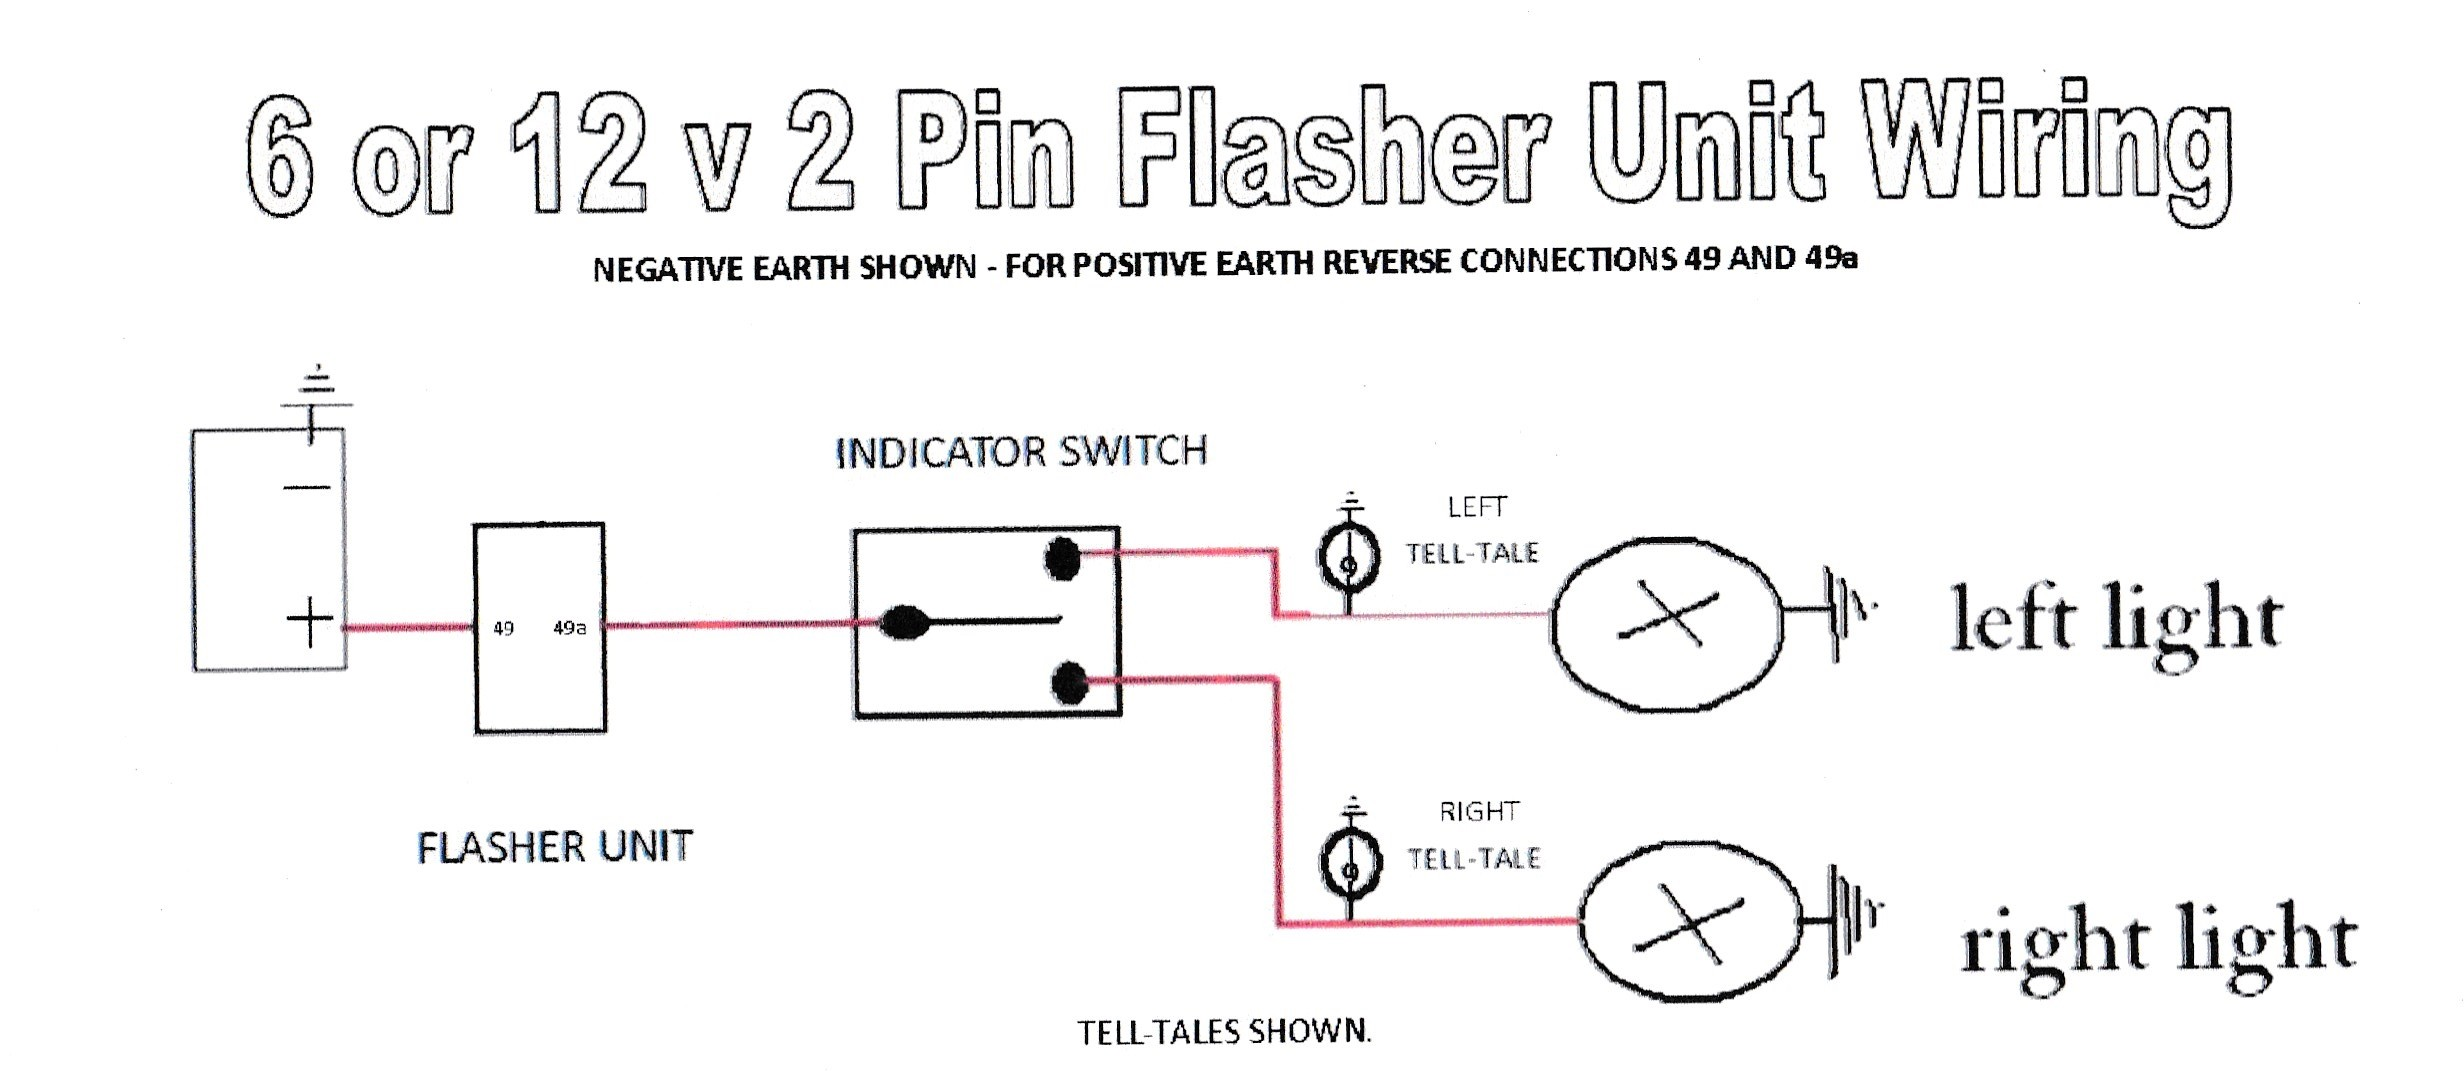 2 Pin Flasher Relay Wiring Diagram 1 with 2 Pin Flasher Relay Wiring Diagram Wiring Diagram Of 2 Pin Flasher Relay Wiring Diagram